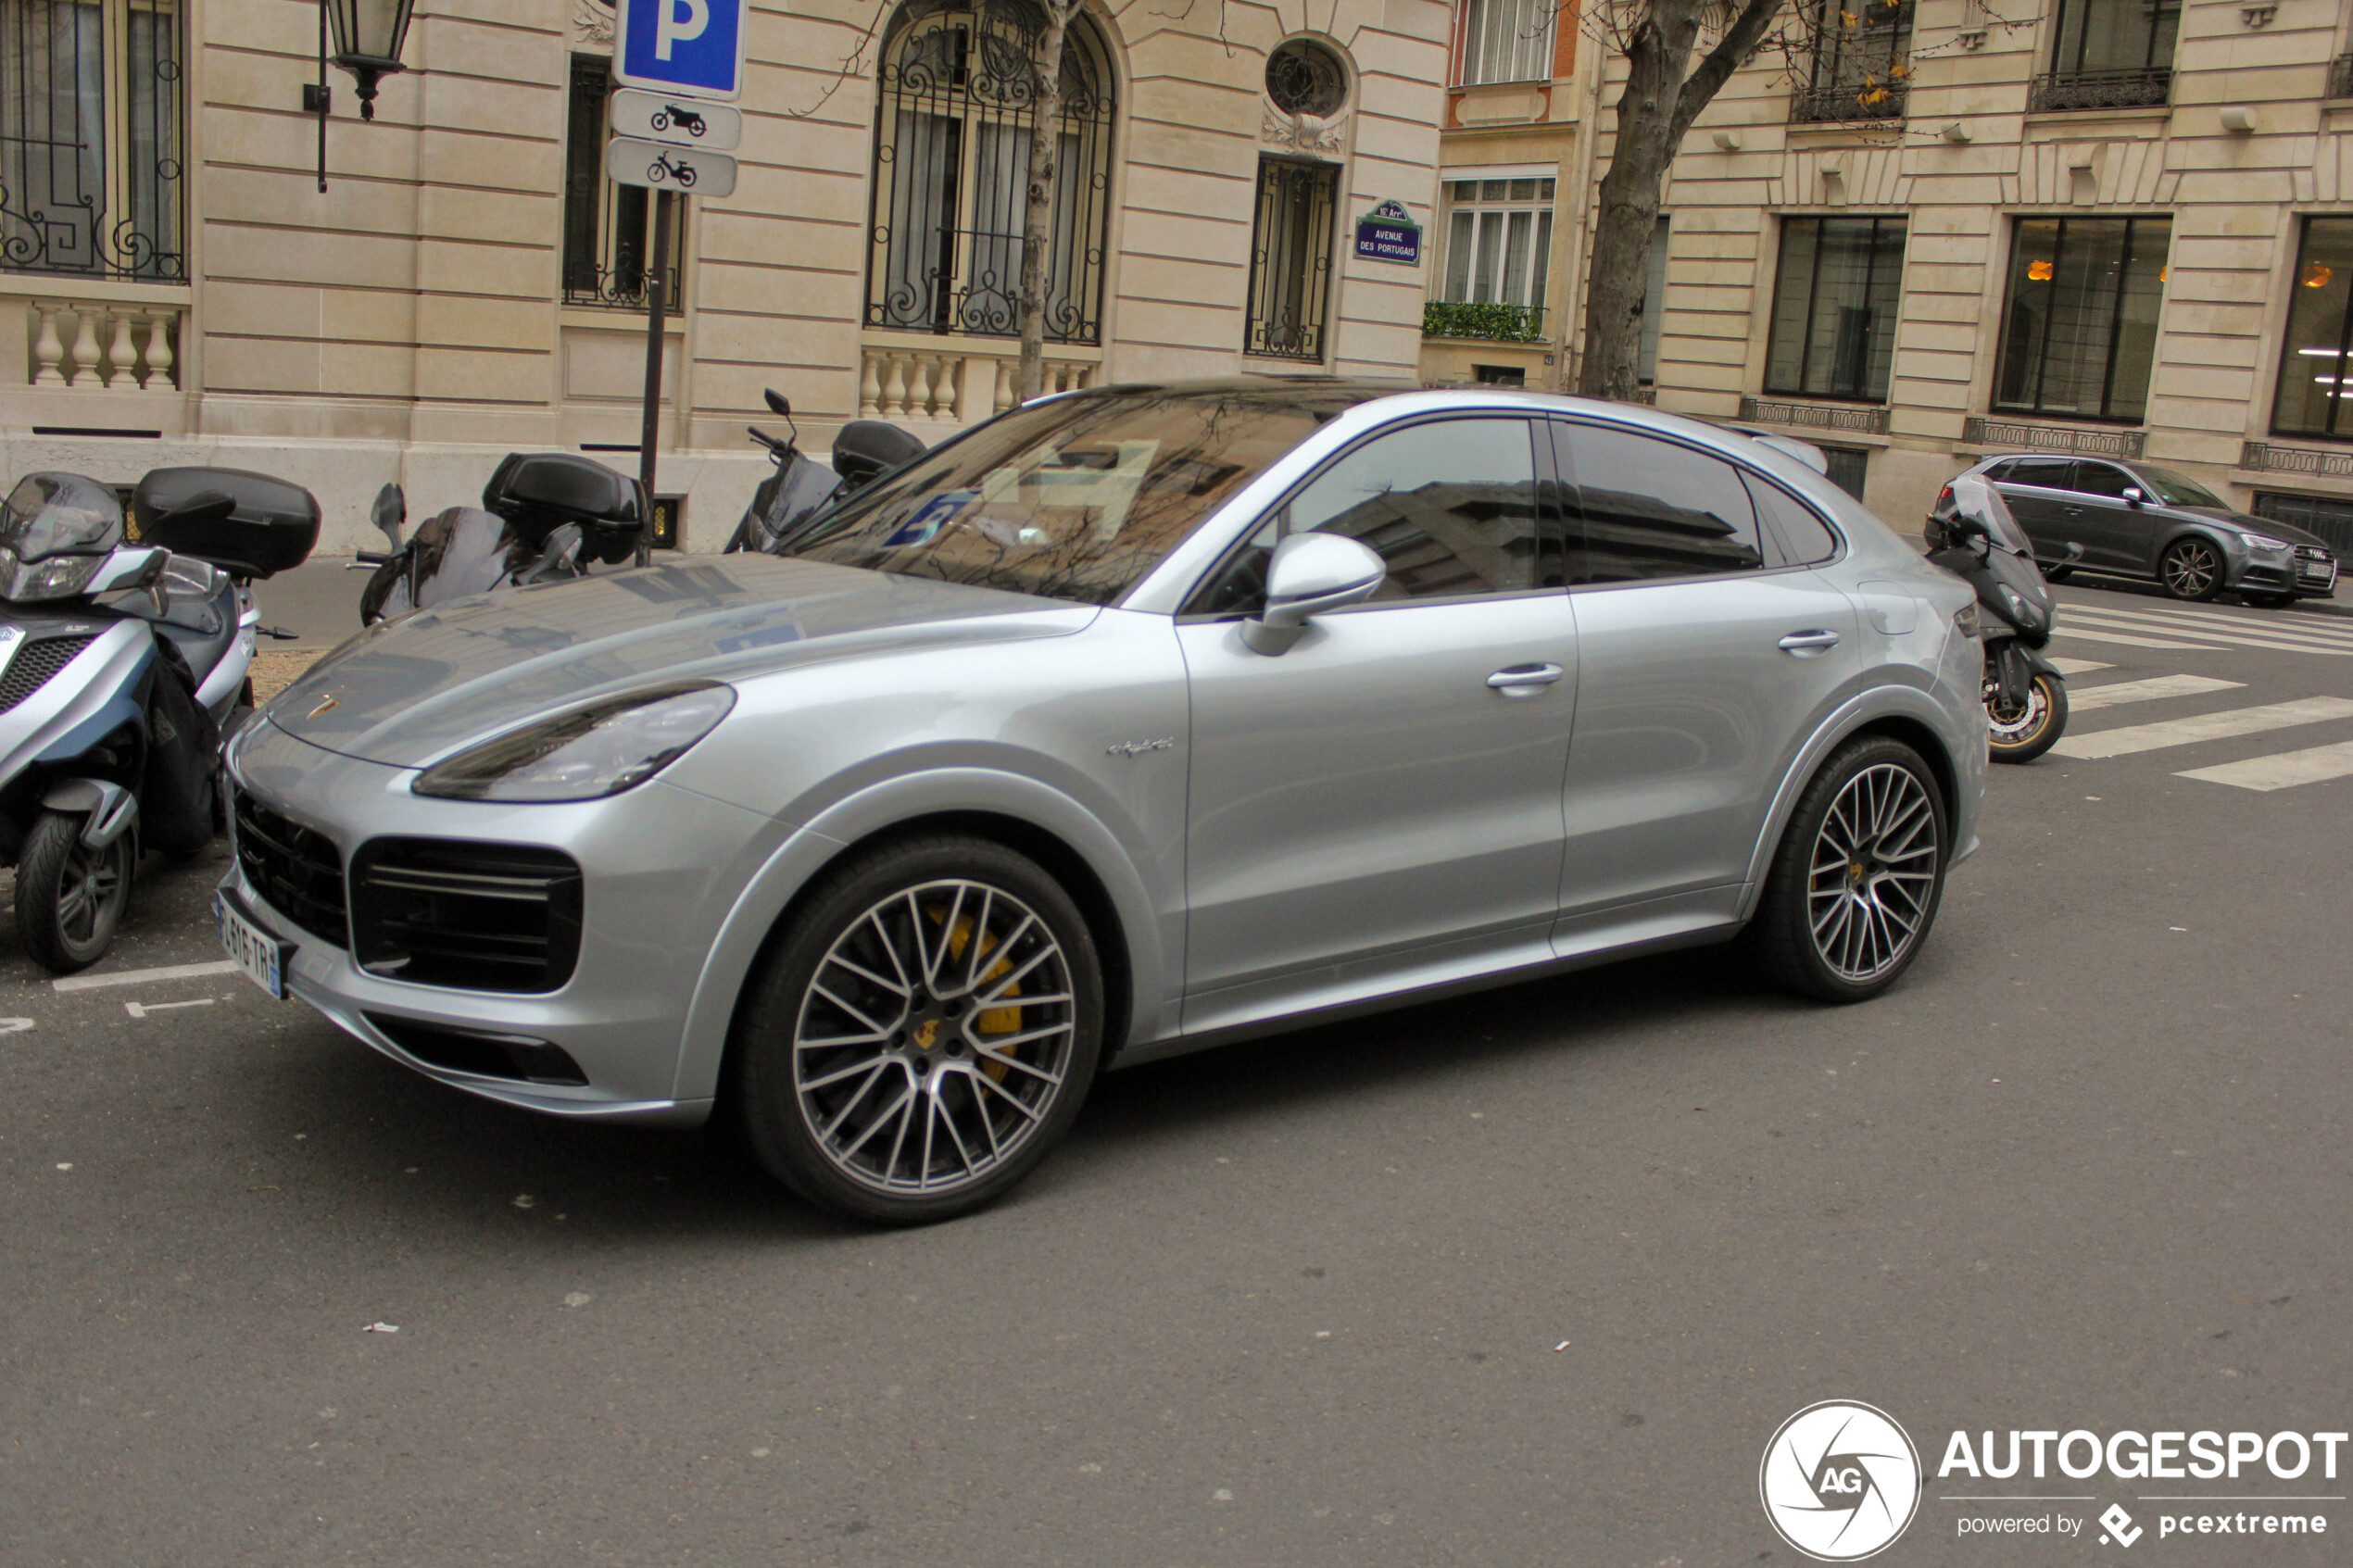 Porsche Cayenne Coupe Turbo S E Hybrid 8 February 2020 Autogespot